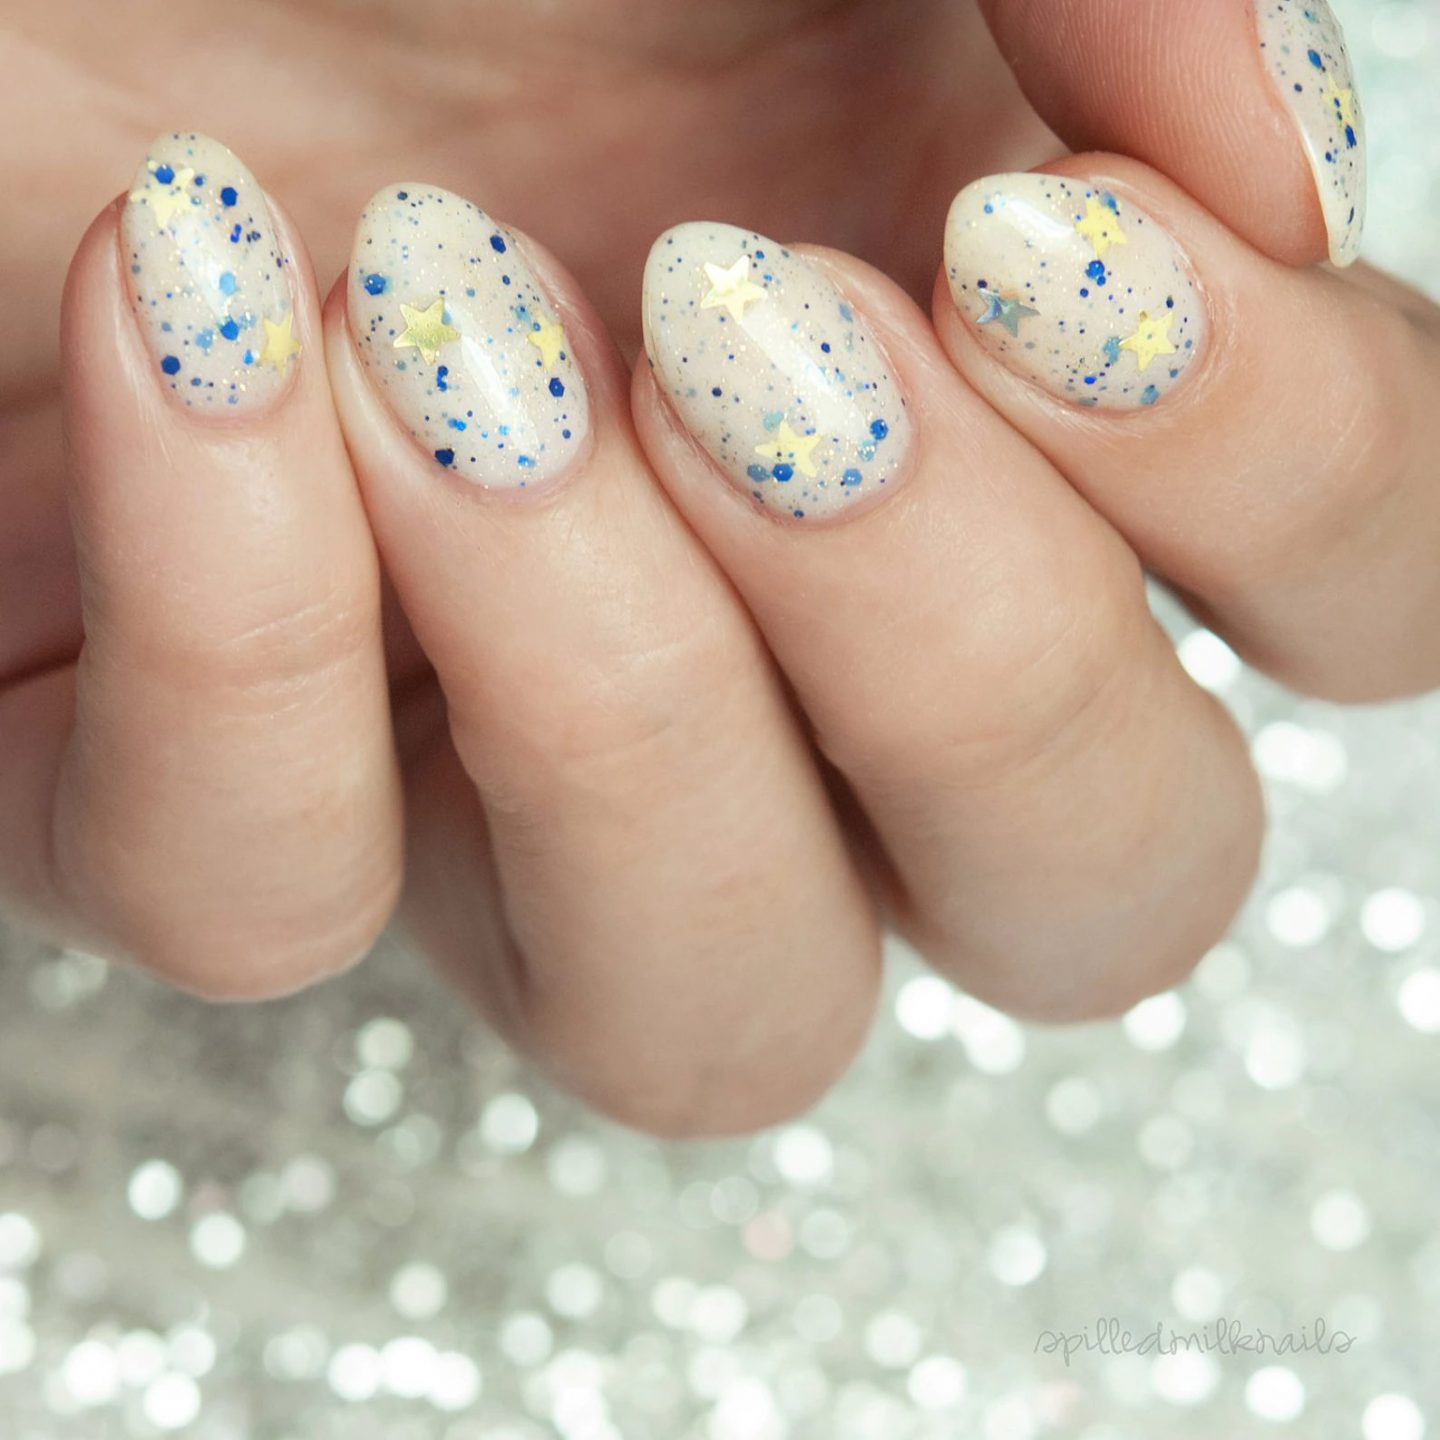 Cute short white New Years eve nails with stars and blue specks